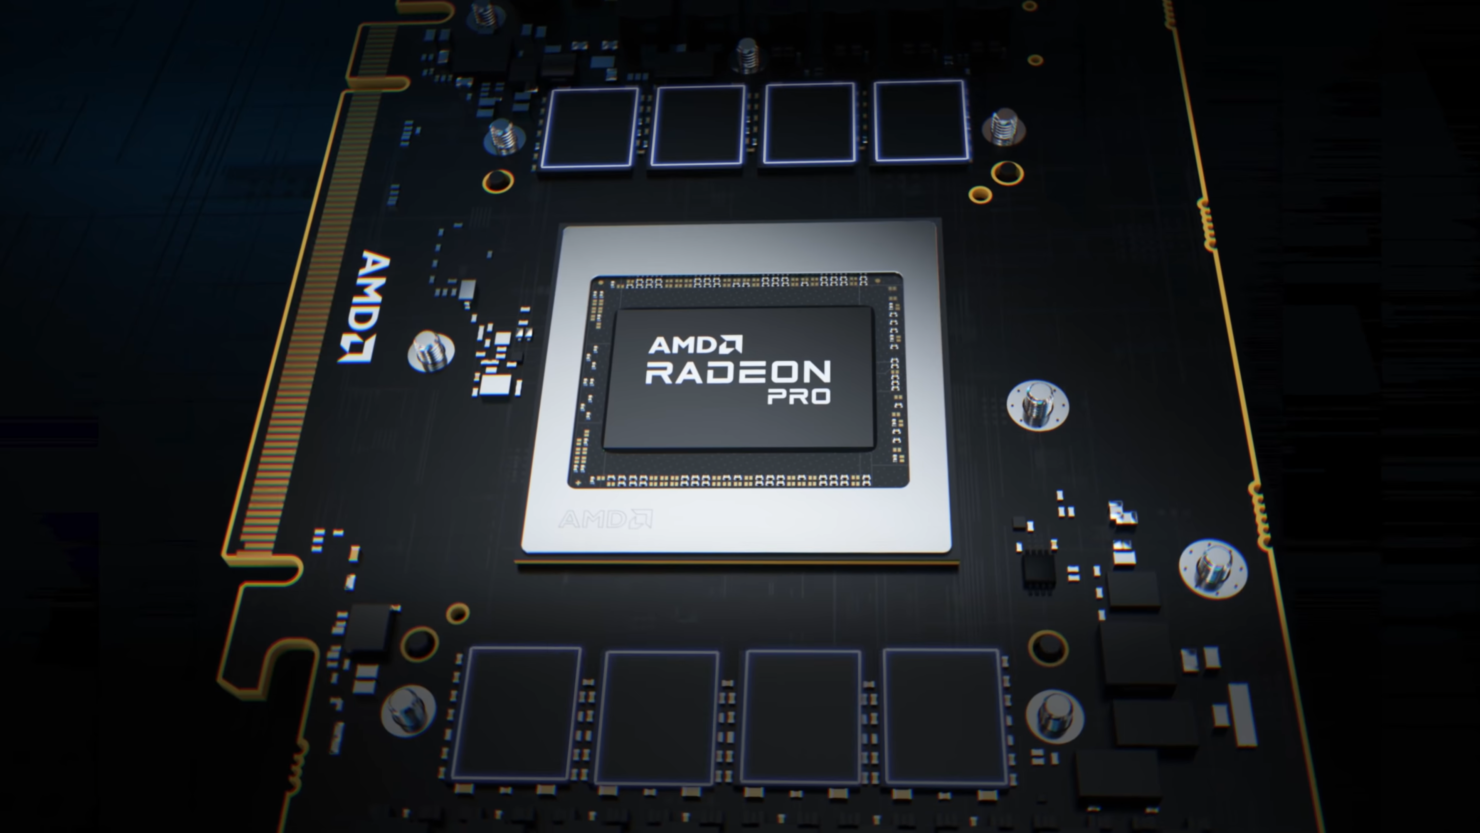 AMD Radeon PRO W6800X Duo 'Dual RDNA 2 GPU' Graphics Card Outperforms NVIDIA GeForce RTX 3090 & RTX A6000 In Octane Render